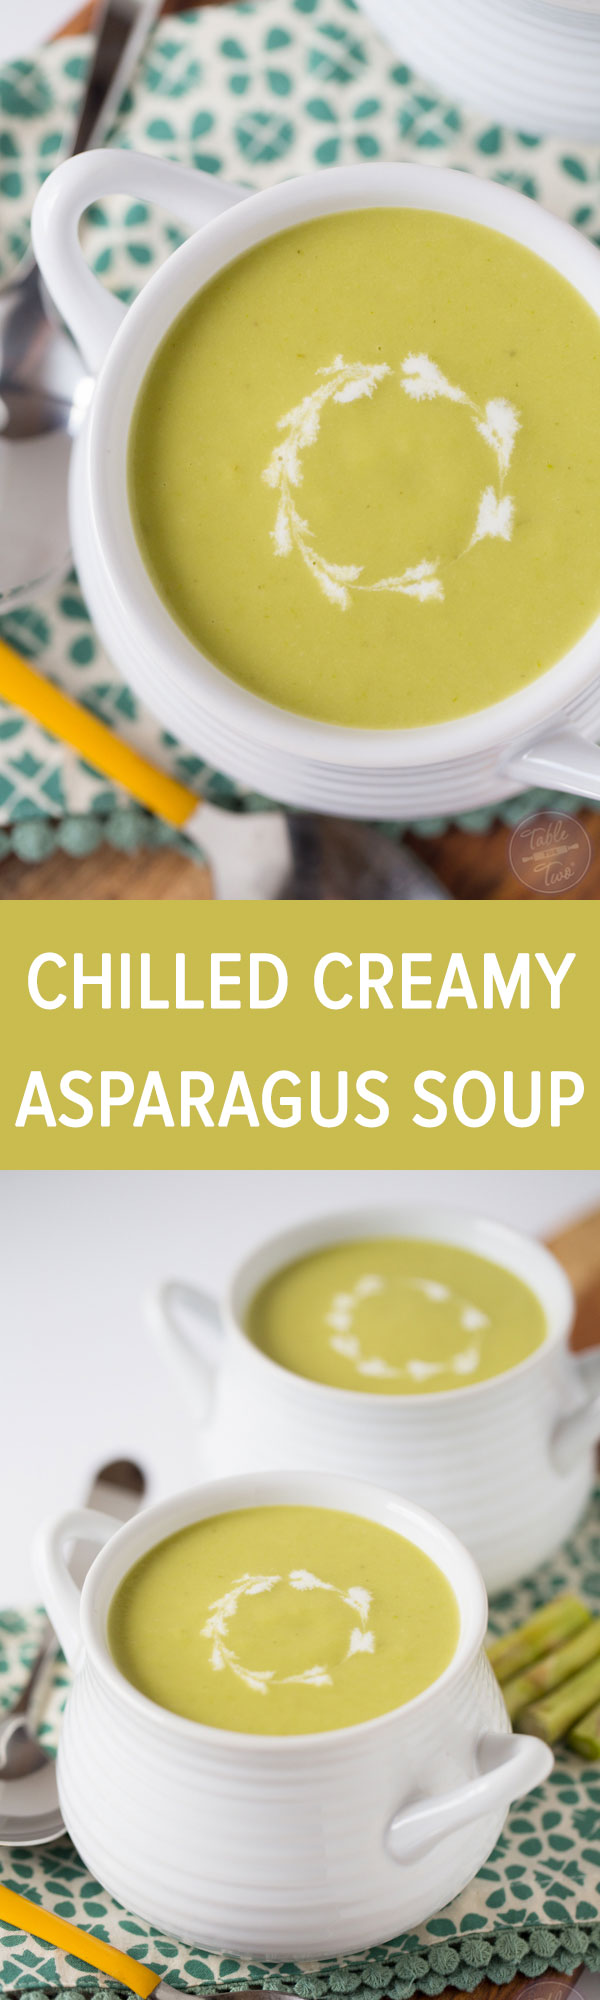 chilled-asparagus-soup-tablefortwoblog-collage.jpg